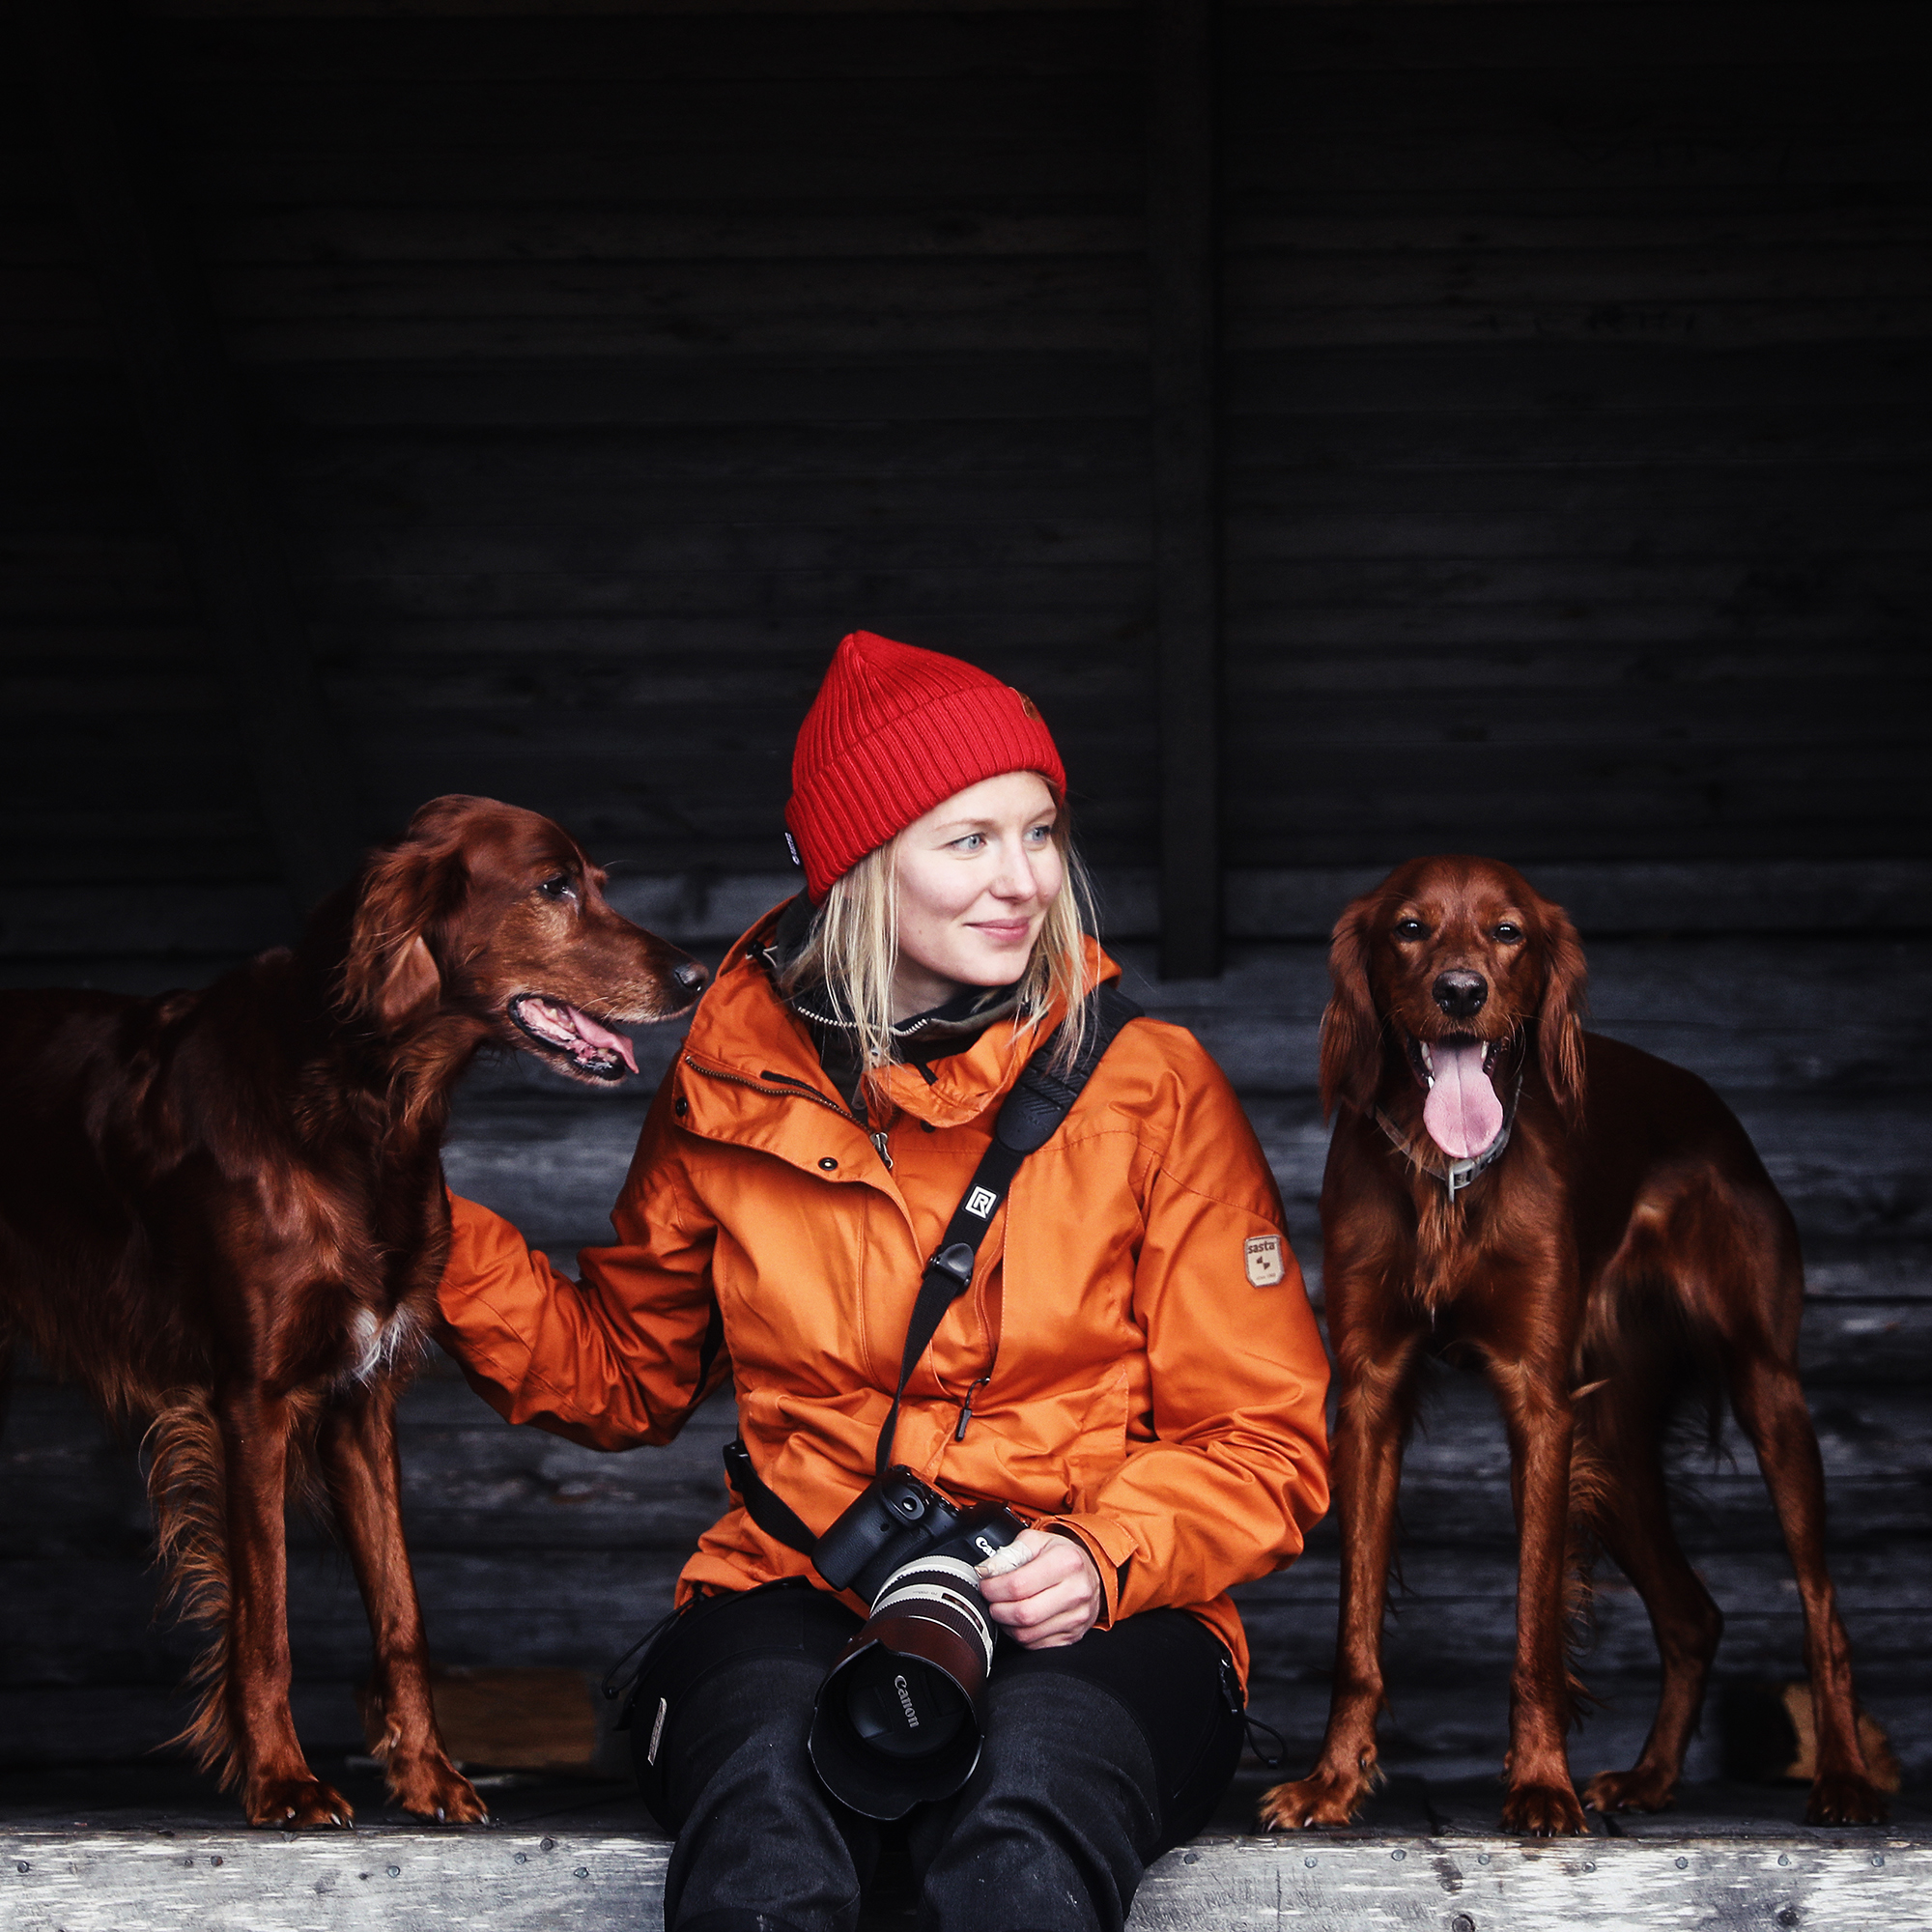 Professional photographer Terhi Tuovinen loves spending time outdoors with her two Irish Setters and sharing moments from the North by photographing northern nature for Lapland's official travel channels.